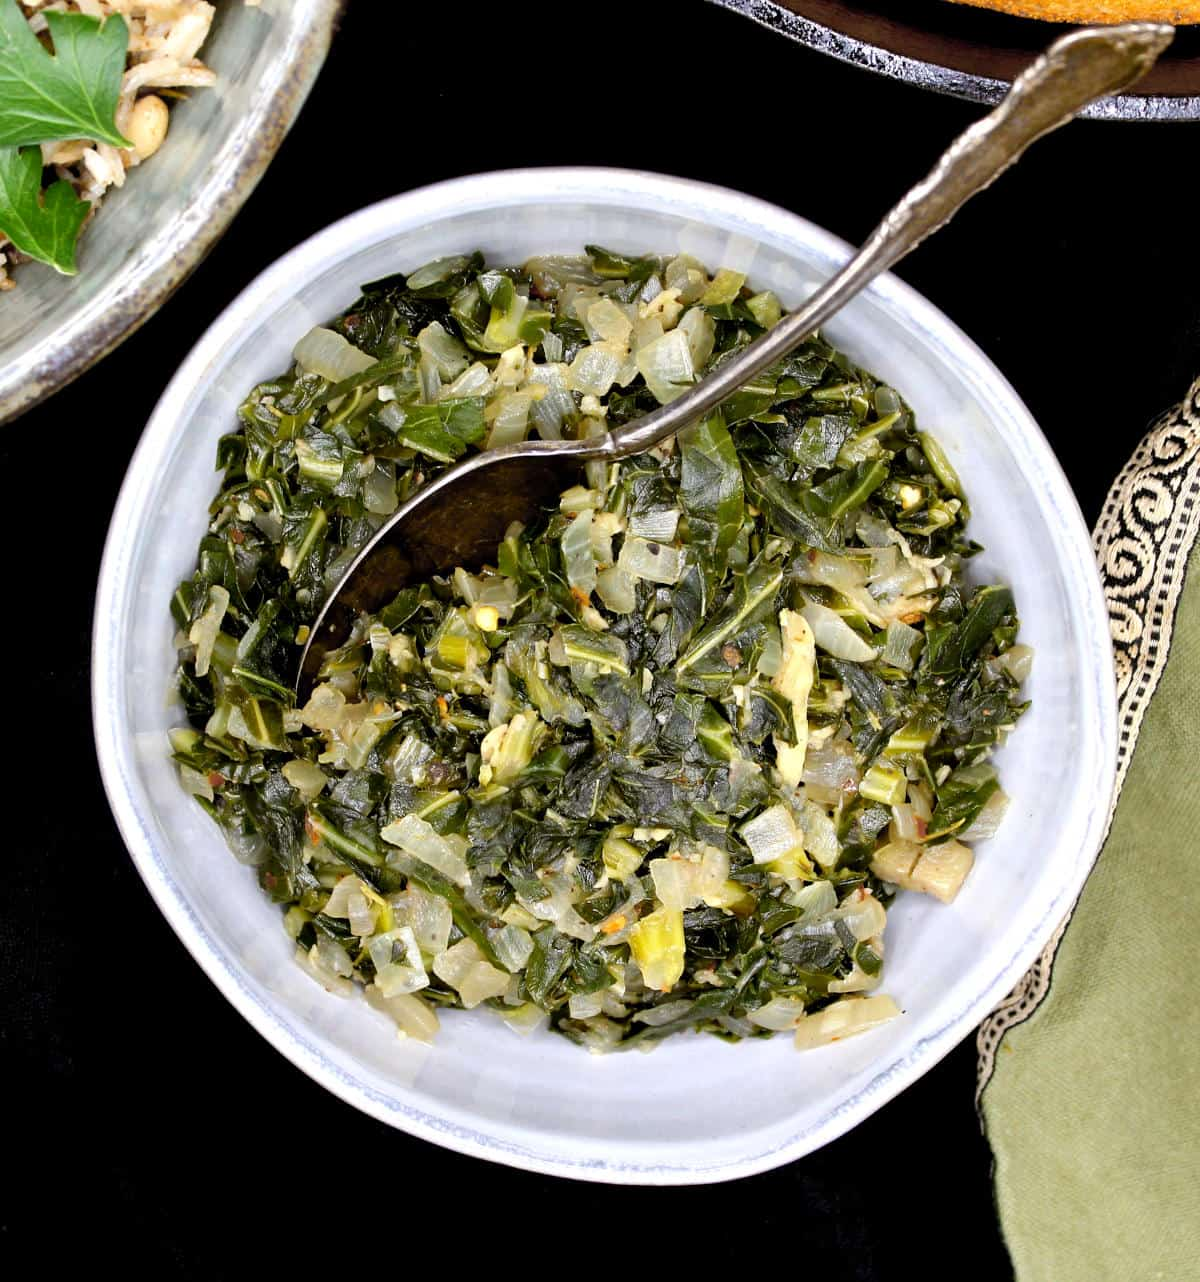 Collard greens cooked southern style with onions, garlic, allspice and rosemary, served in a gray ceramic bowl with a spoon and a green napkin next to it.